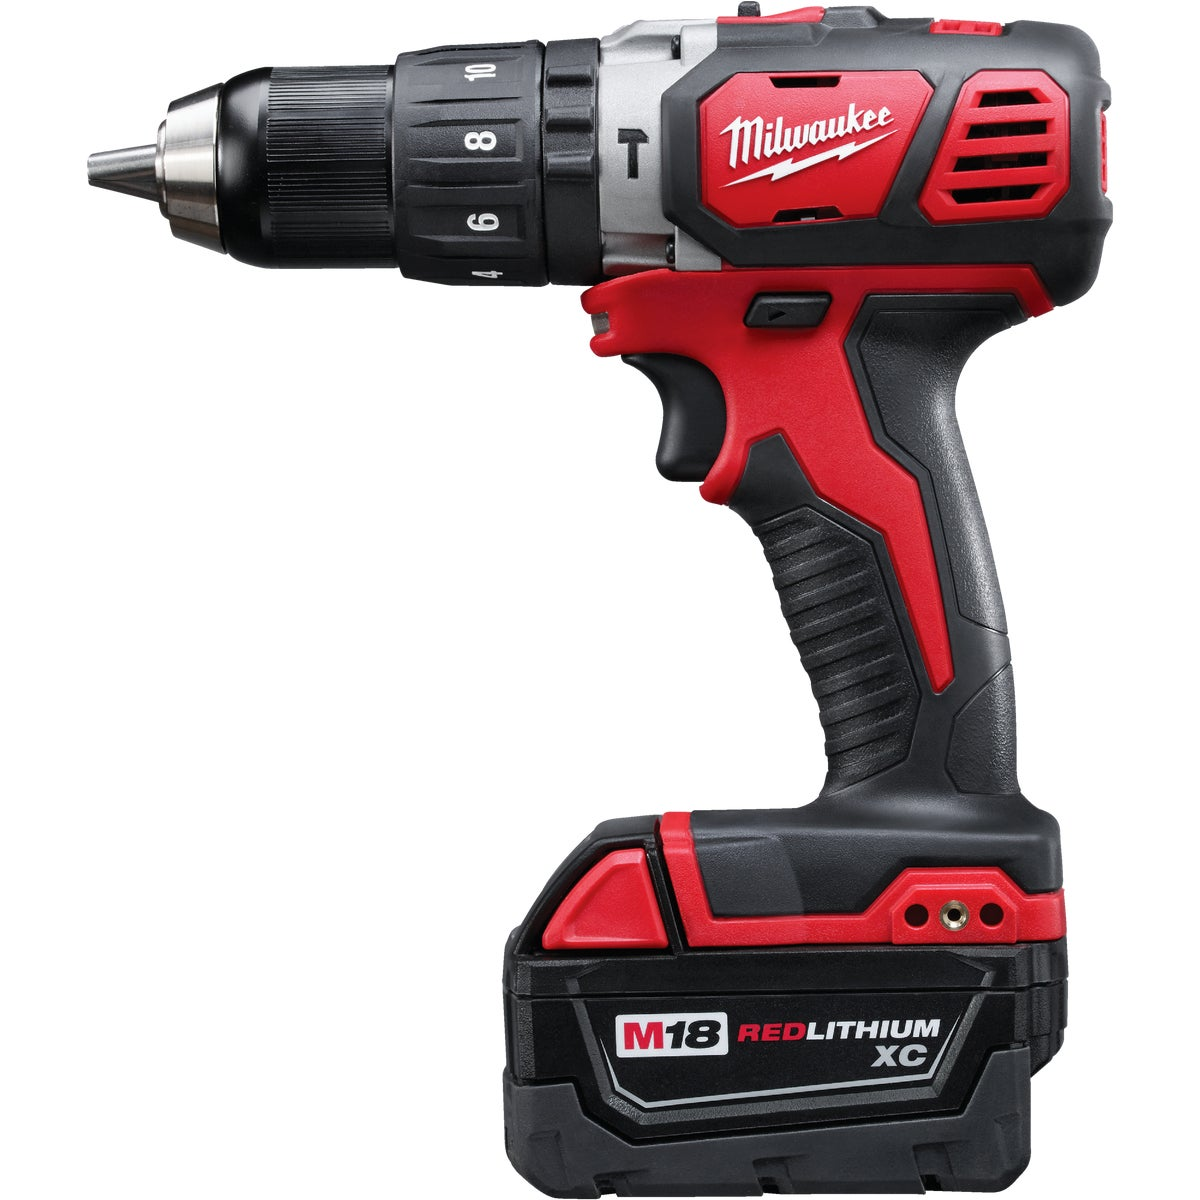 "M18 1/2"" HAMMER DRILL - 2607-22 by Milwaukee Elec Tool"